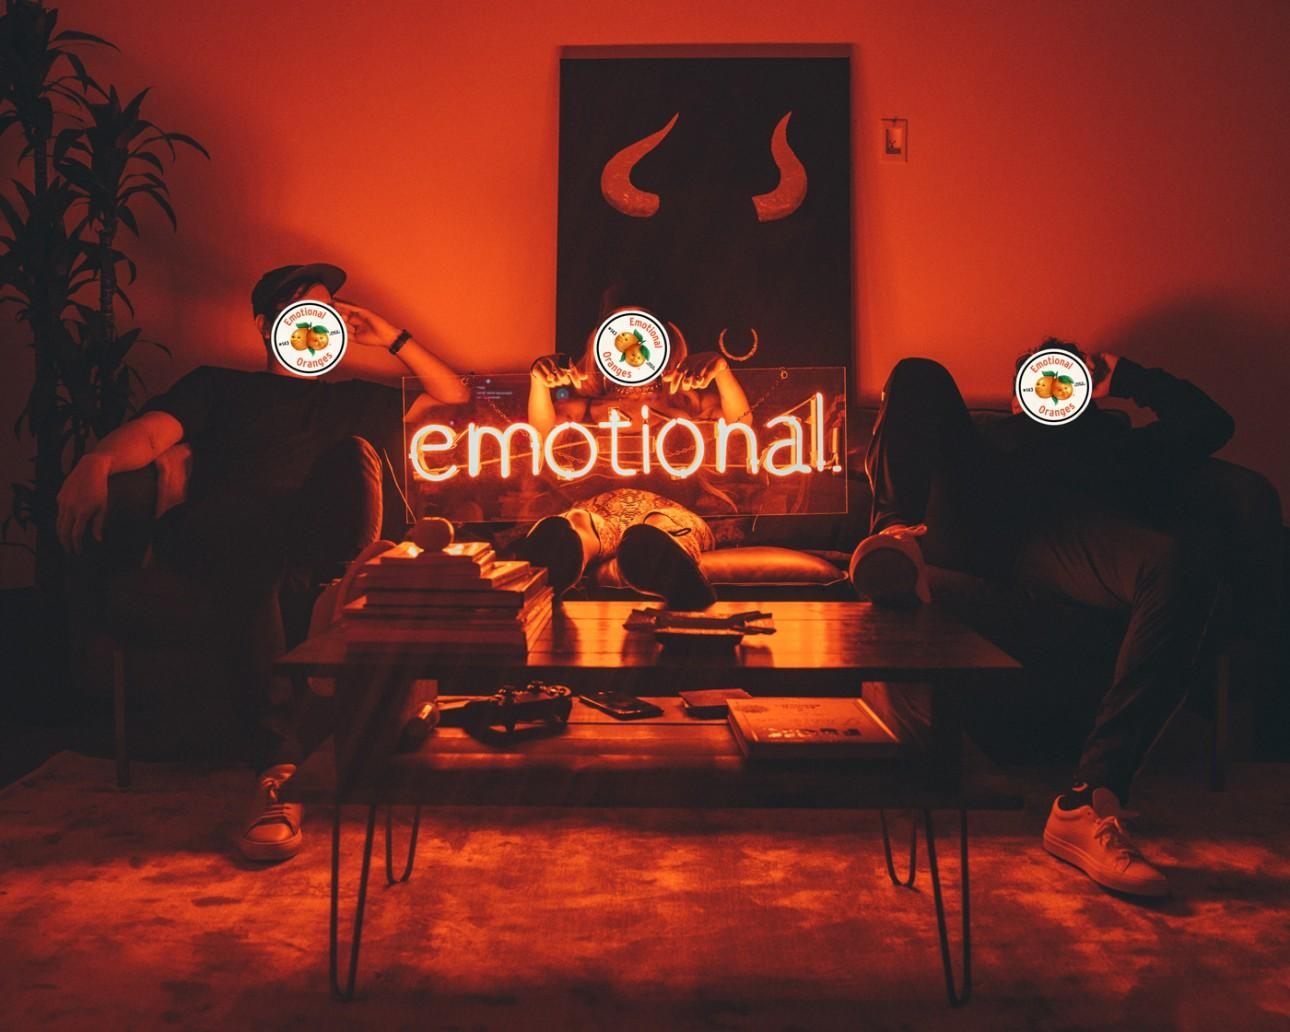 Now Hear This: New music from Skepta, Grace Carter, Collard and Flying Lotus, plus spotlight artist Emotional Oranges